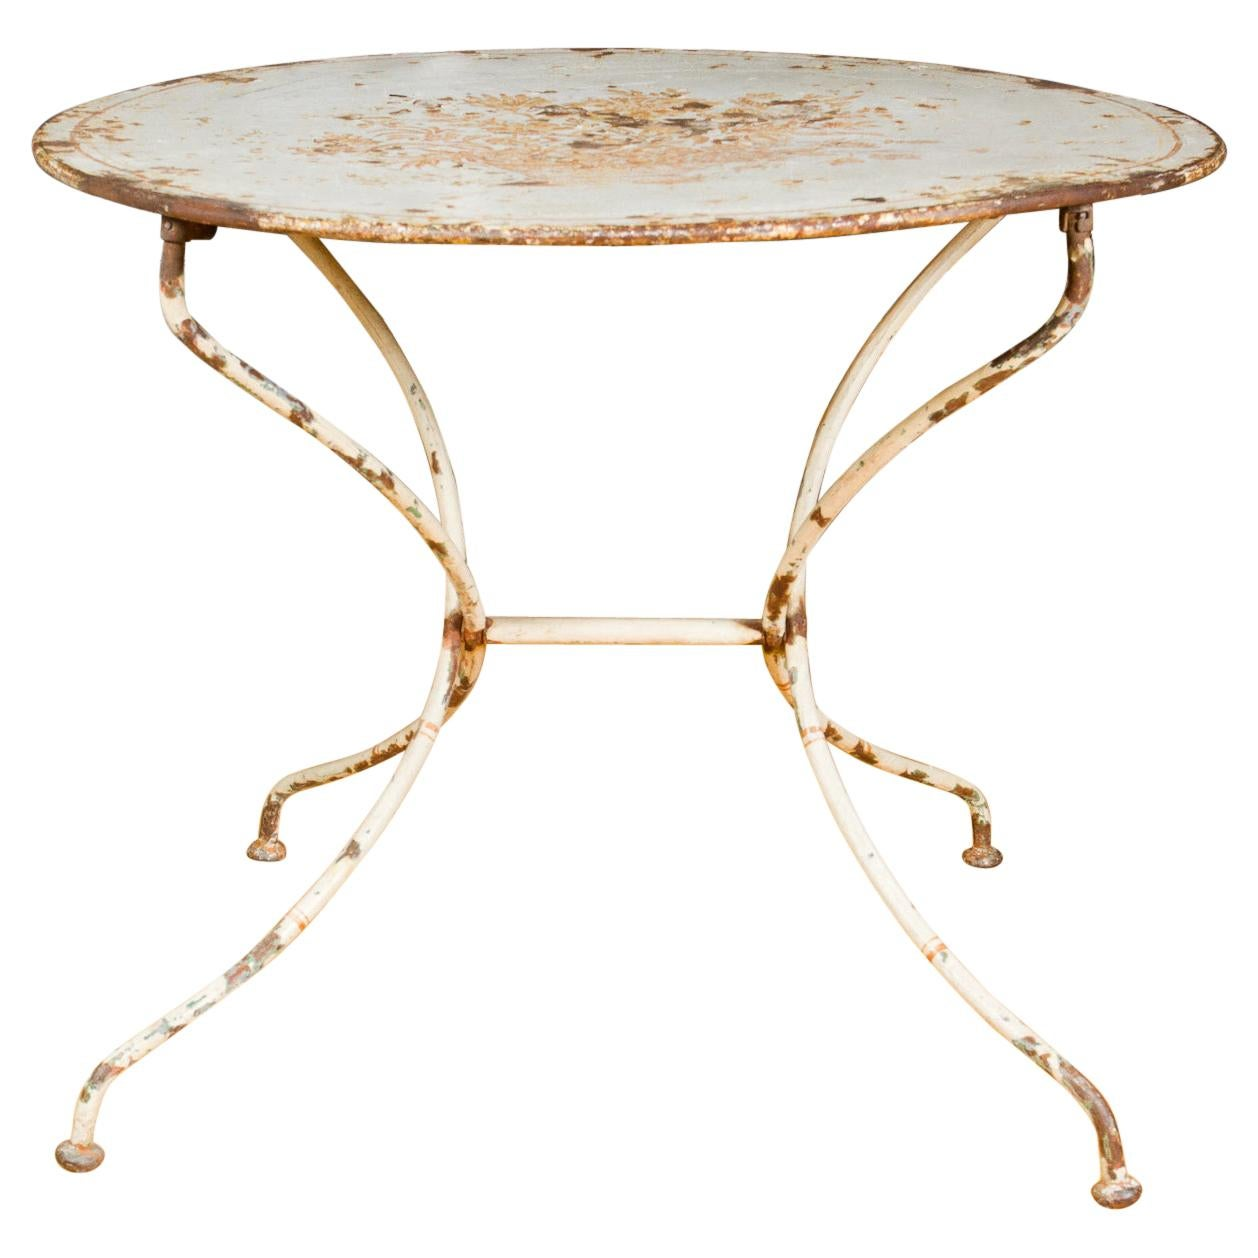 French Painted Tole Garden Table